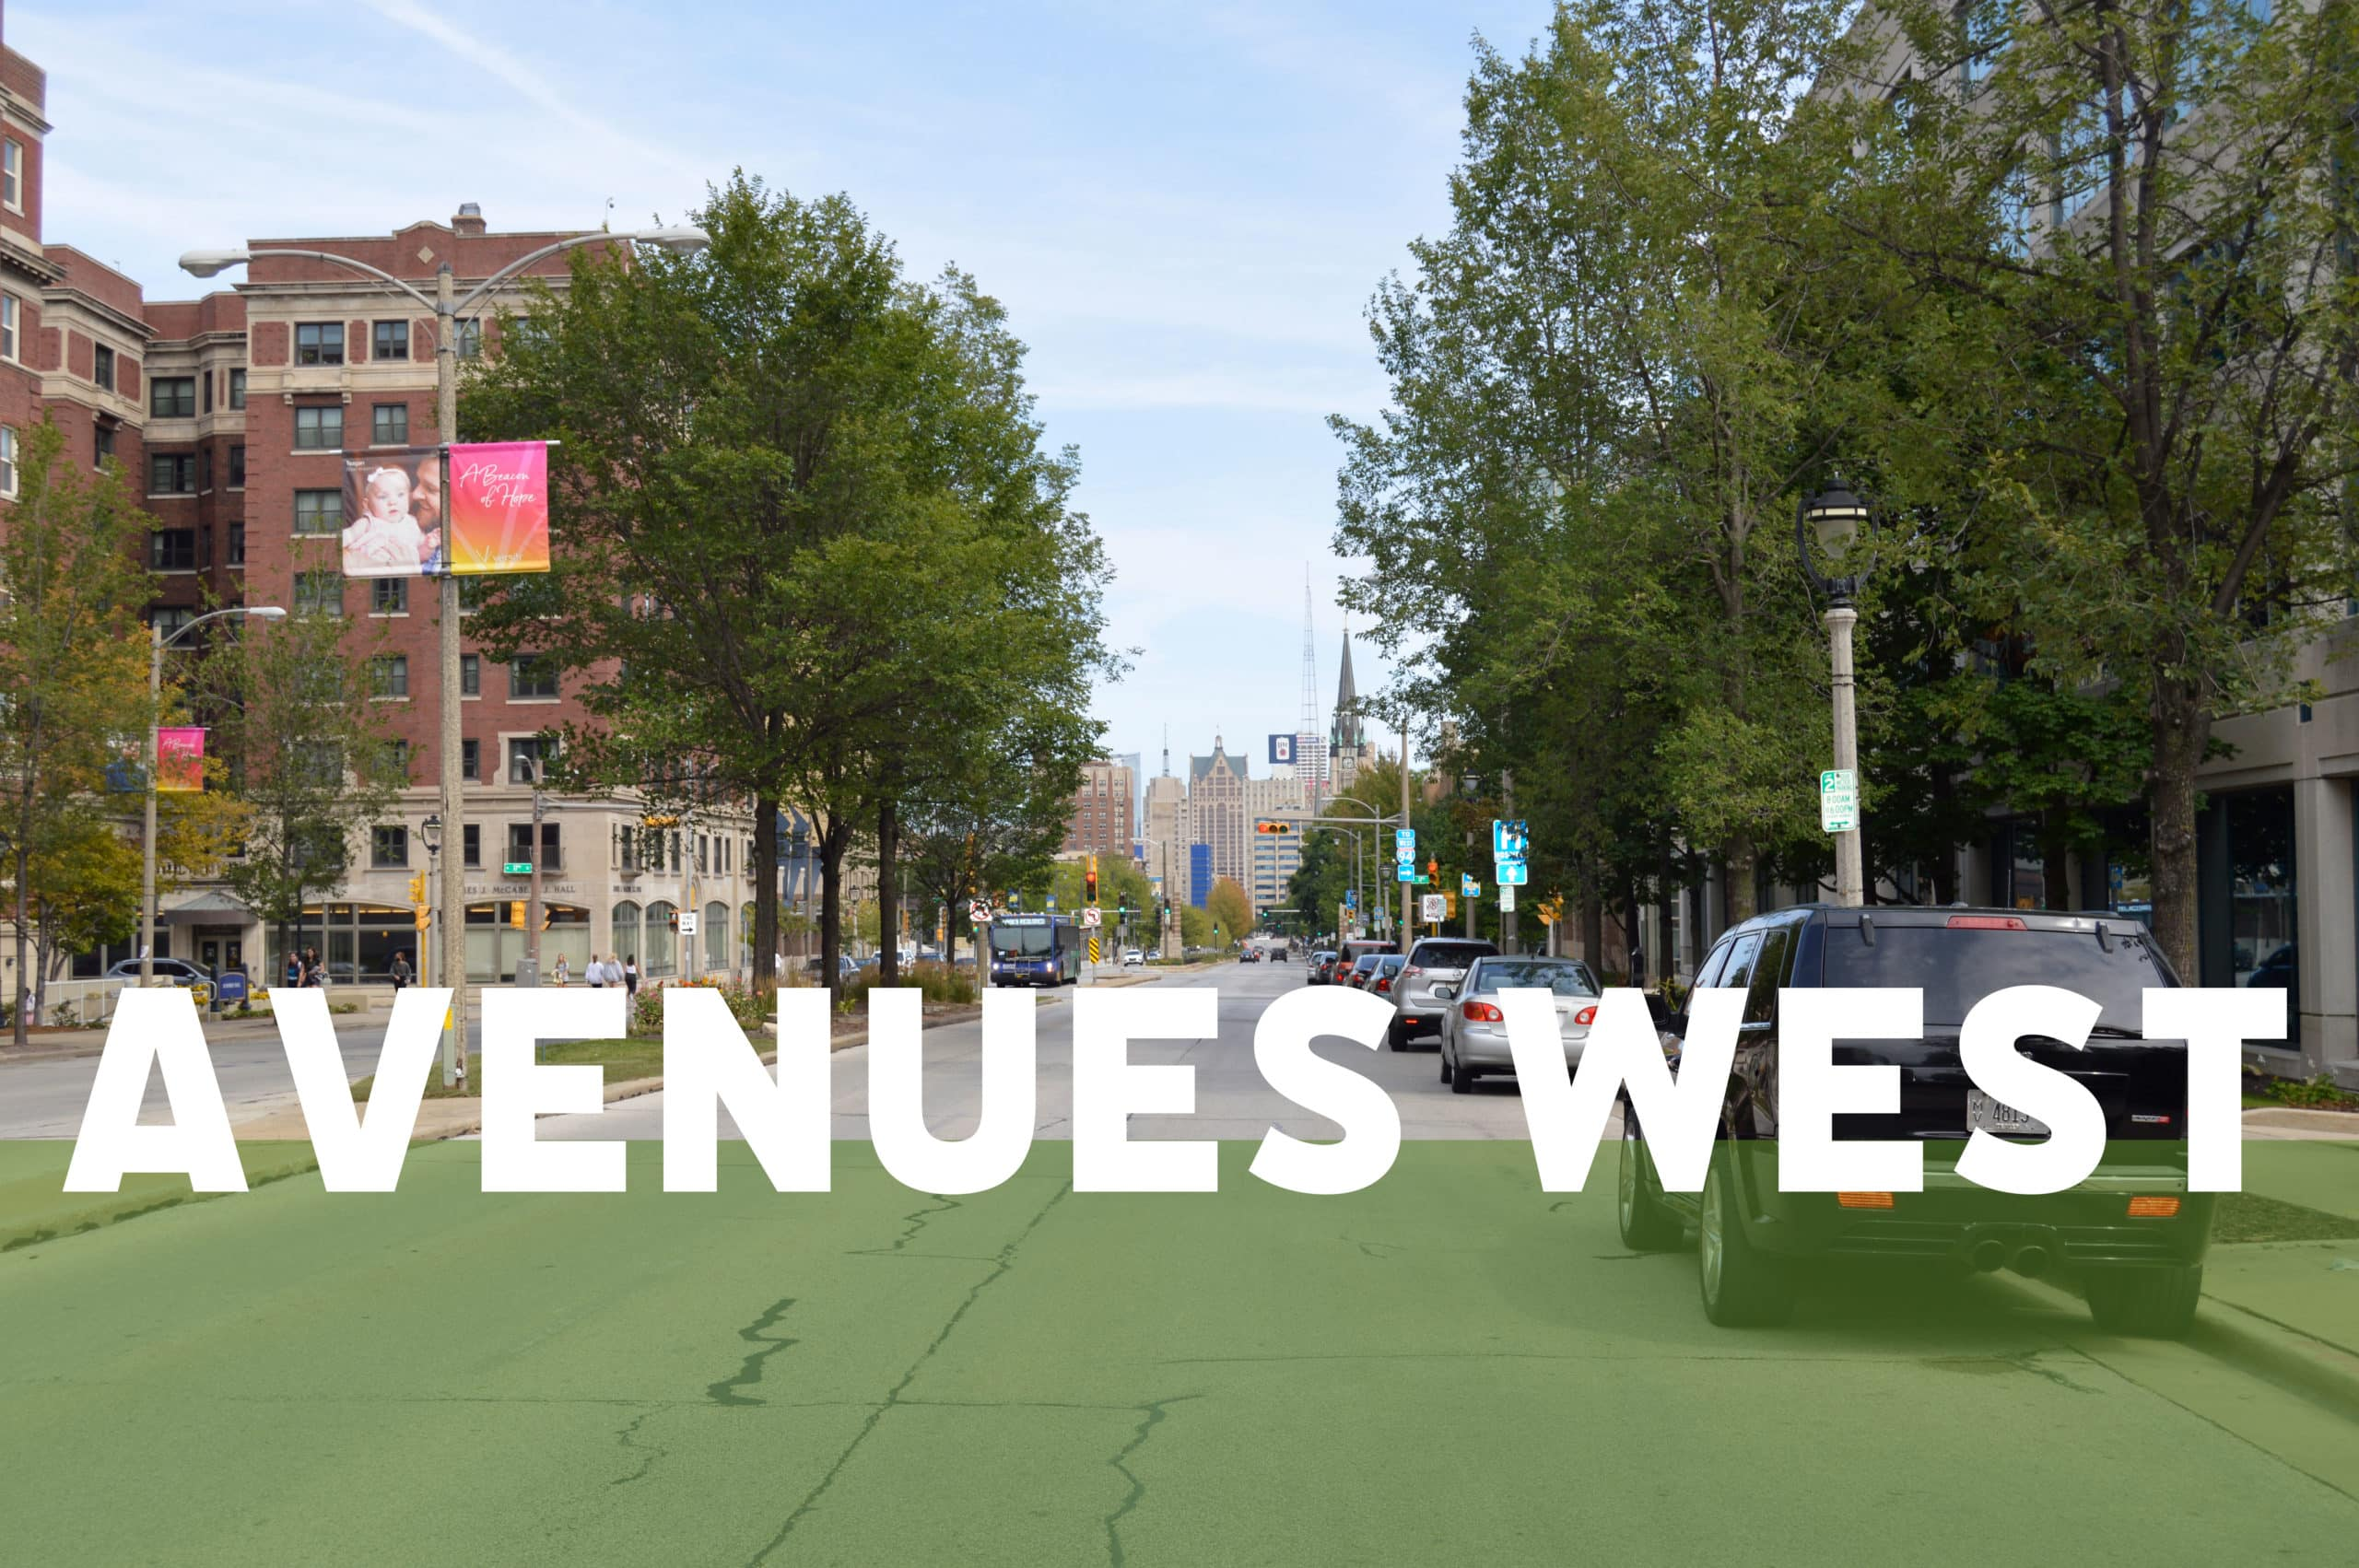 Avenues-West-Image-SFW